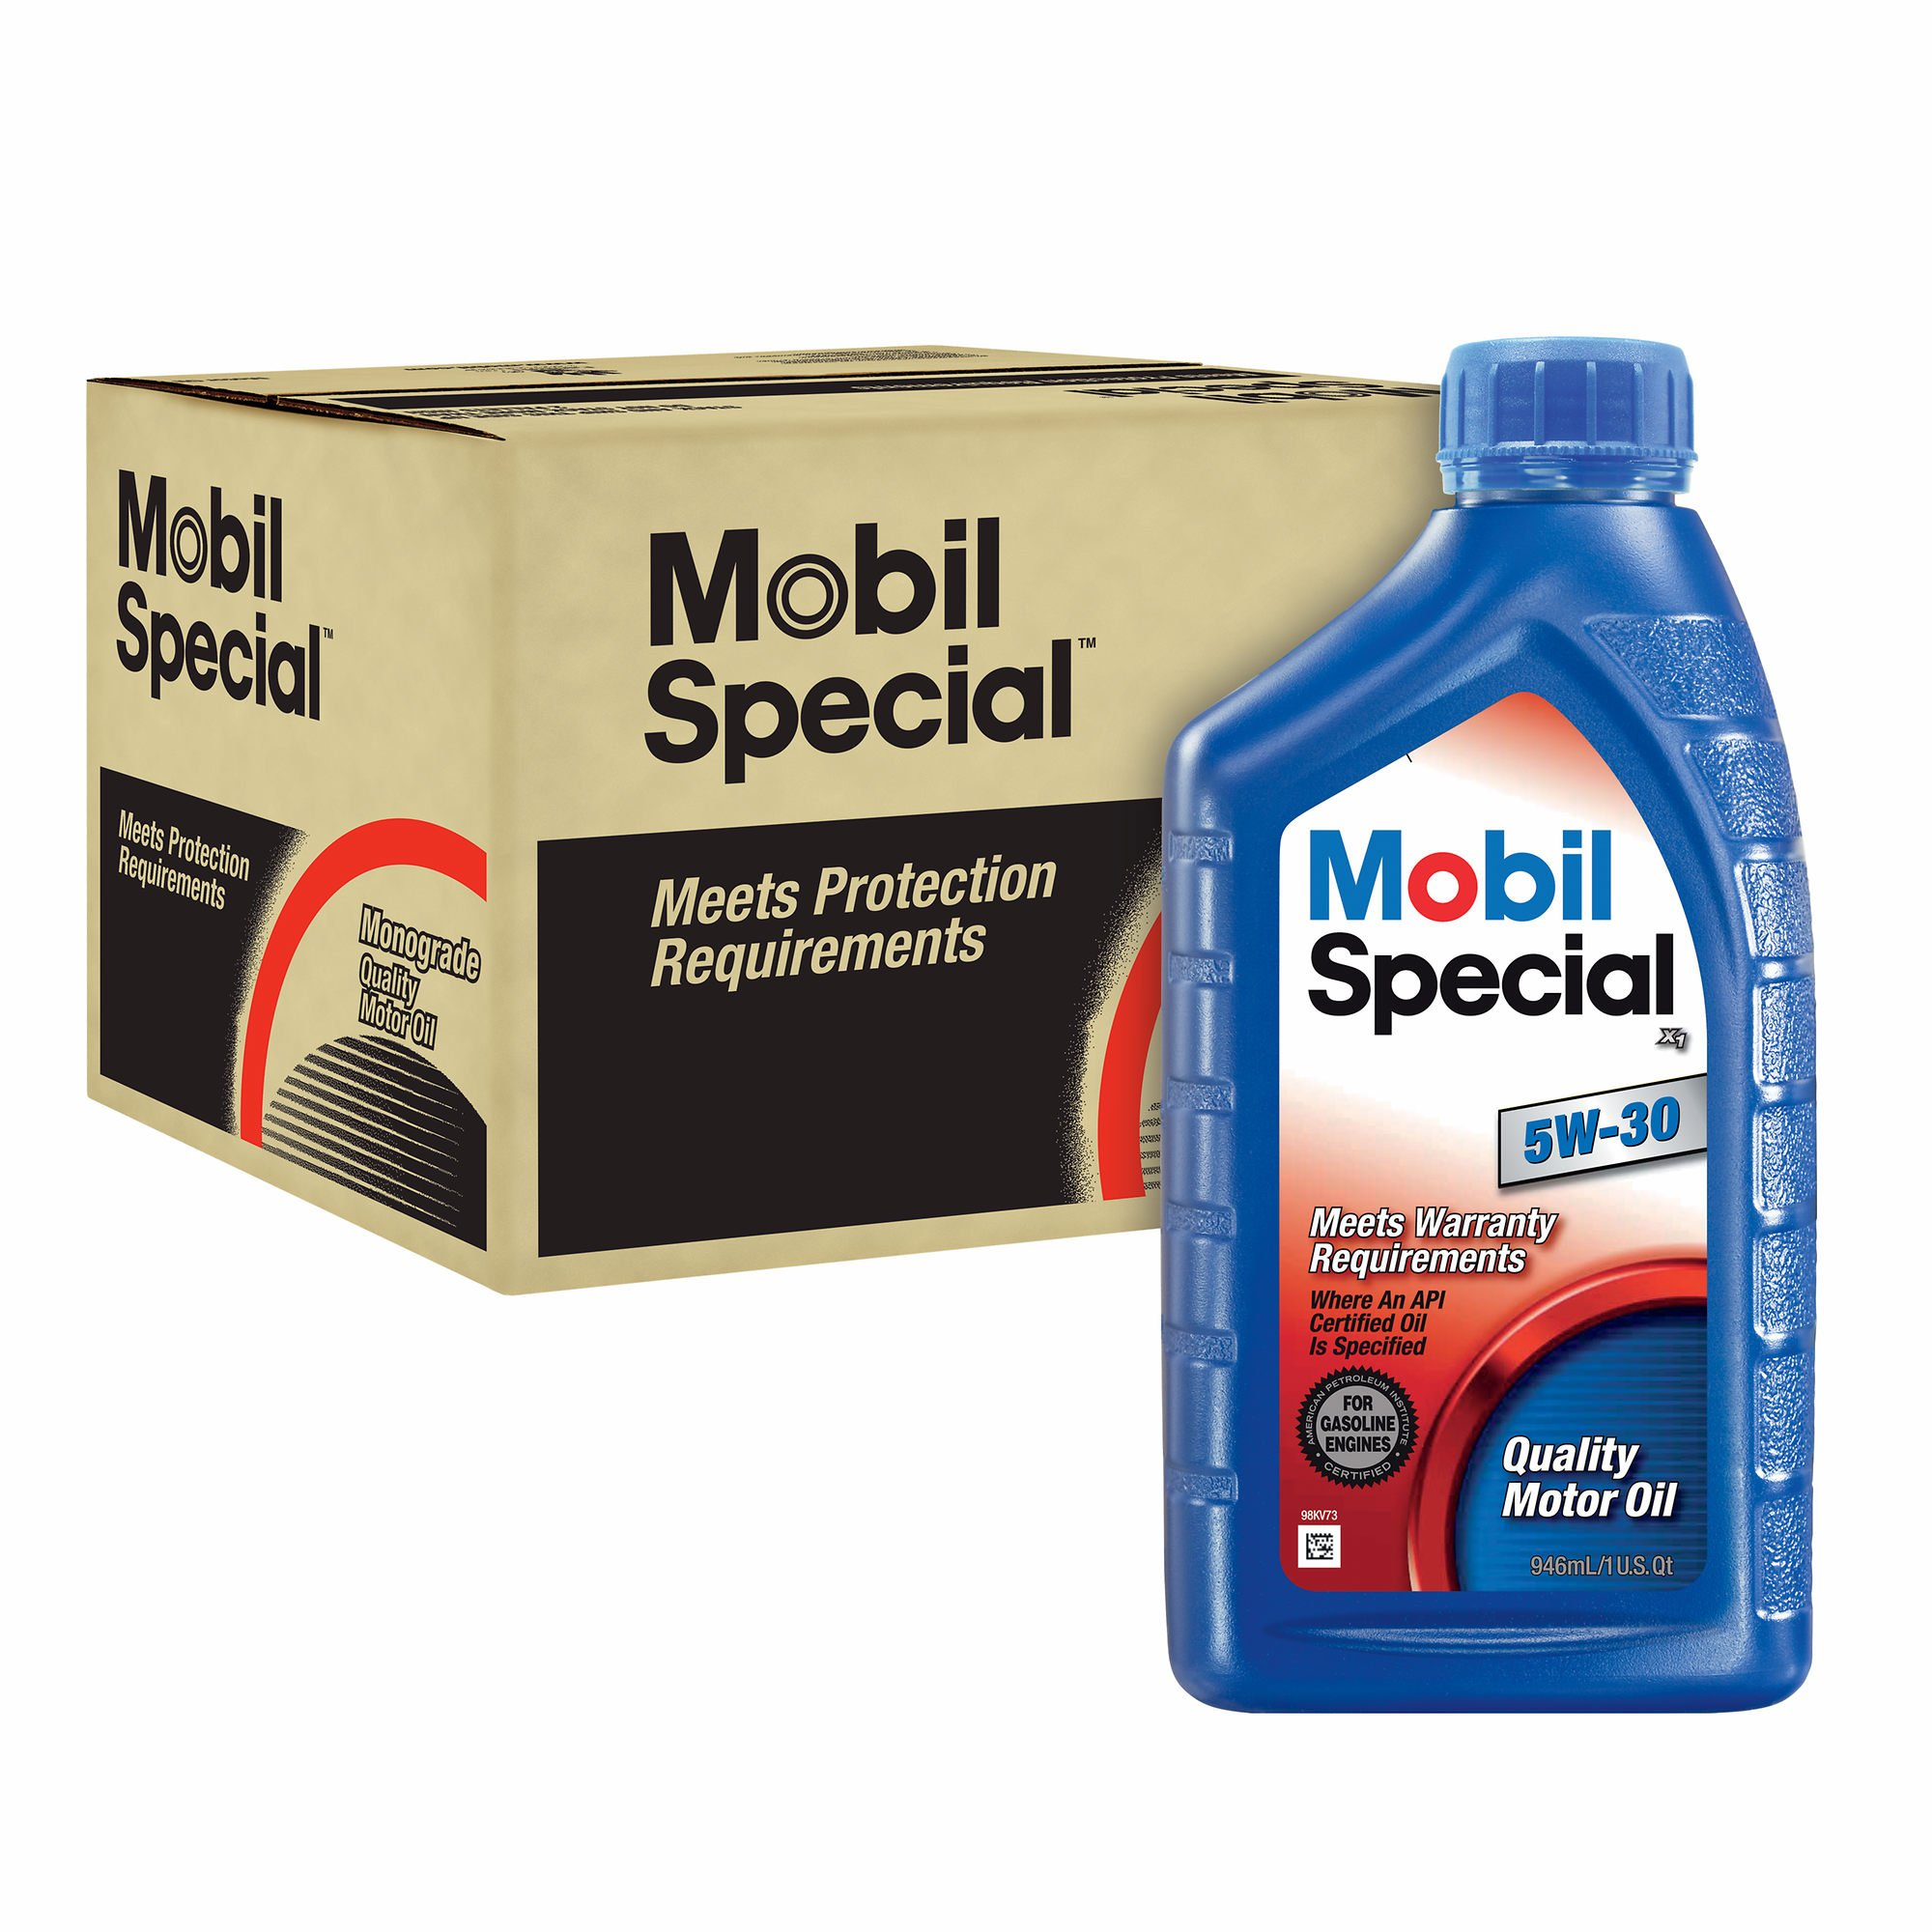 Mobil 5W30 Special Oils, 1 Qt., 12 pk. (pack of 2)